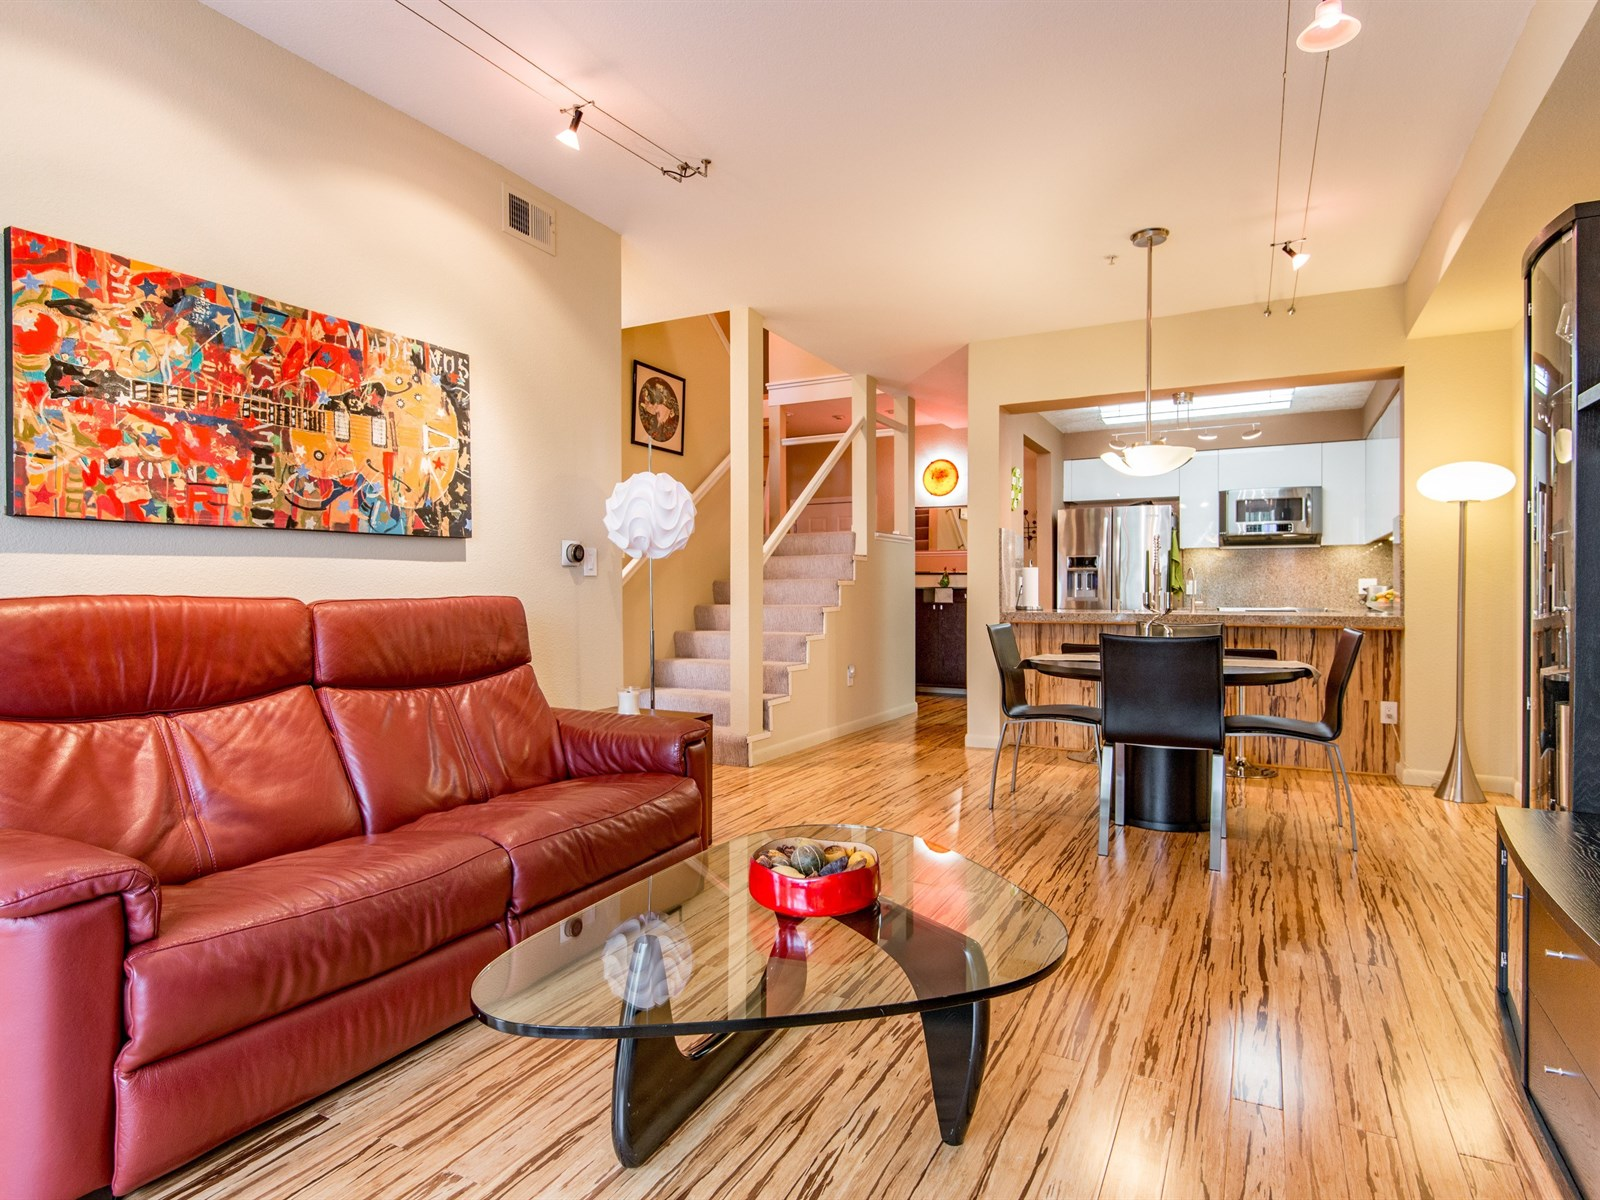 Property For Sale at 435 2nd Street 215, SAN JOSE